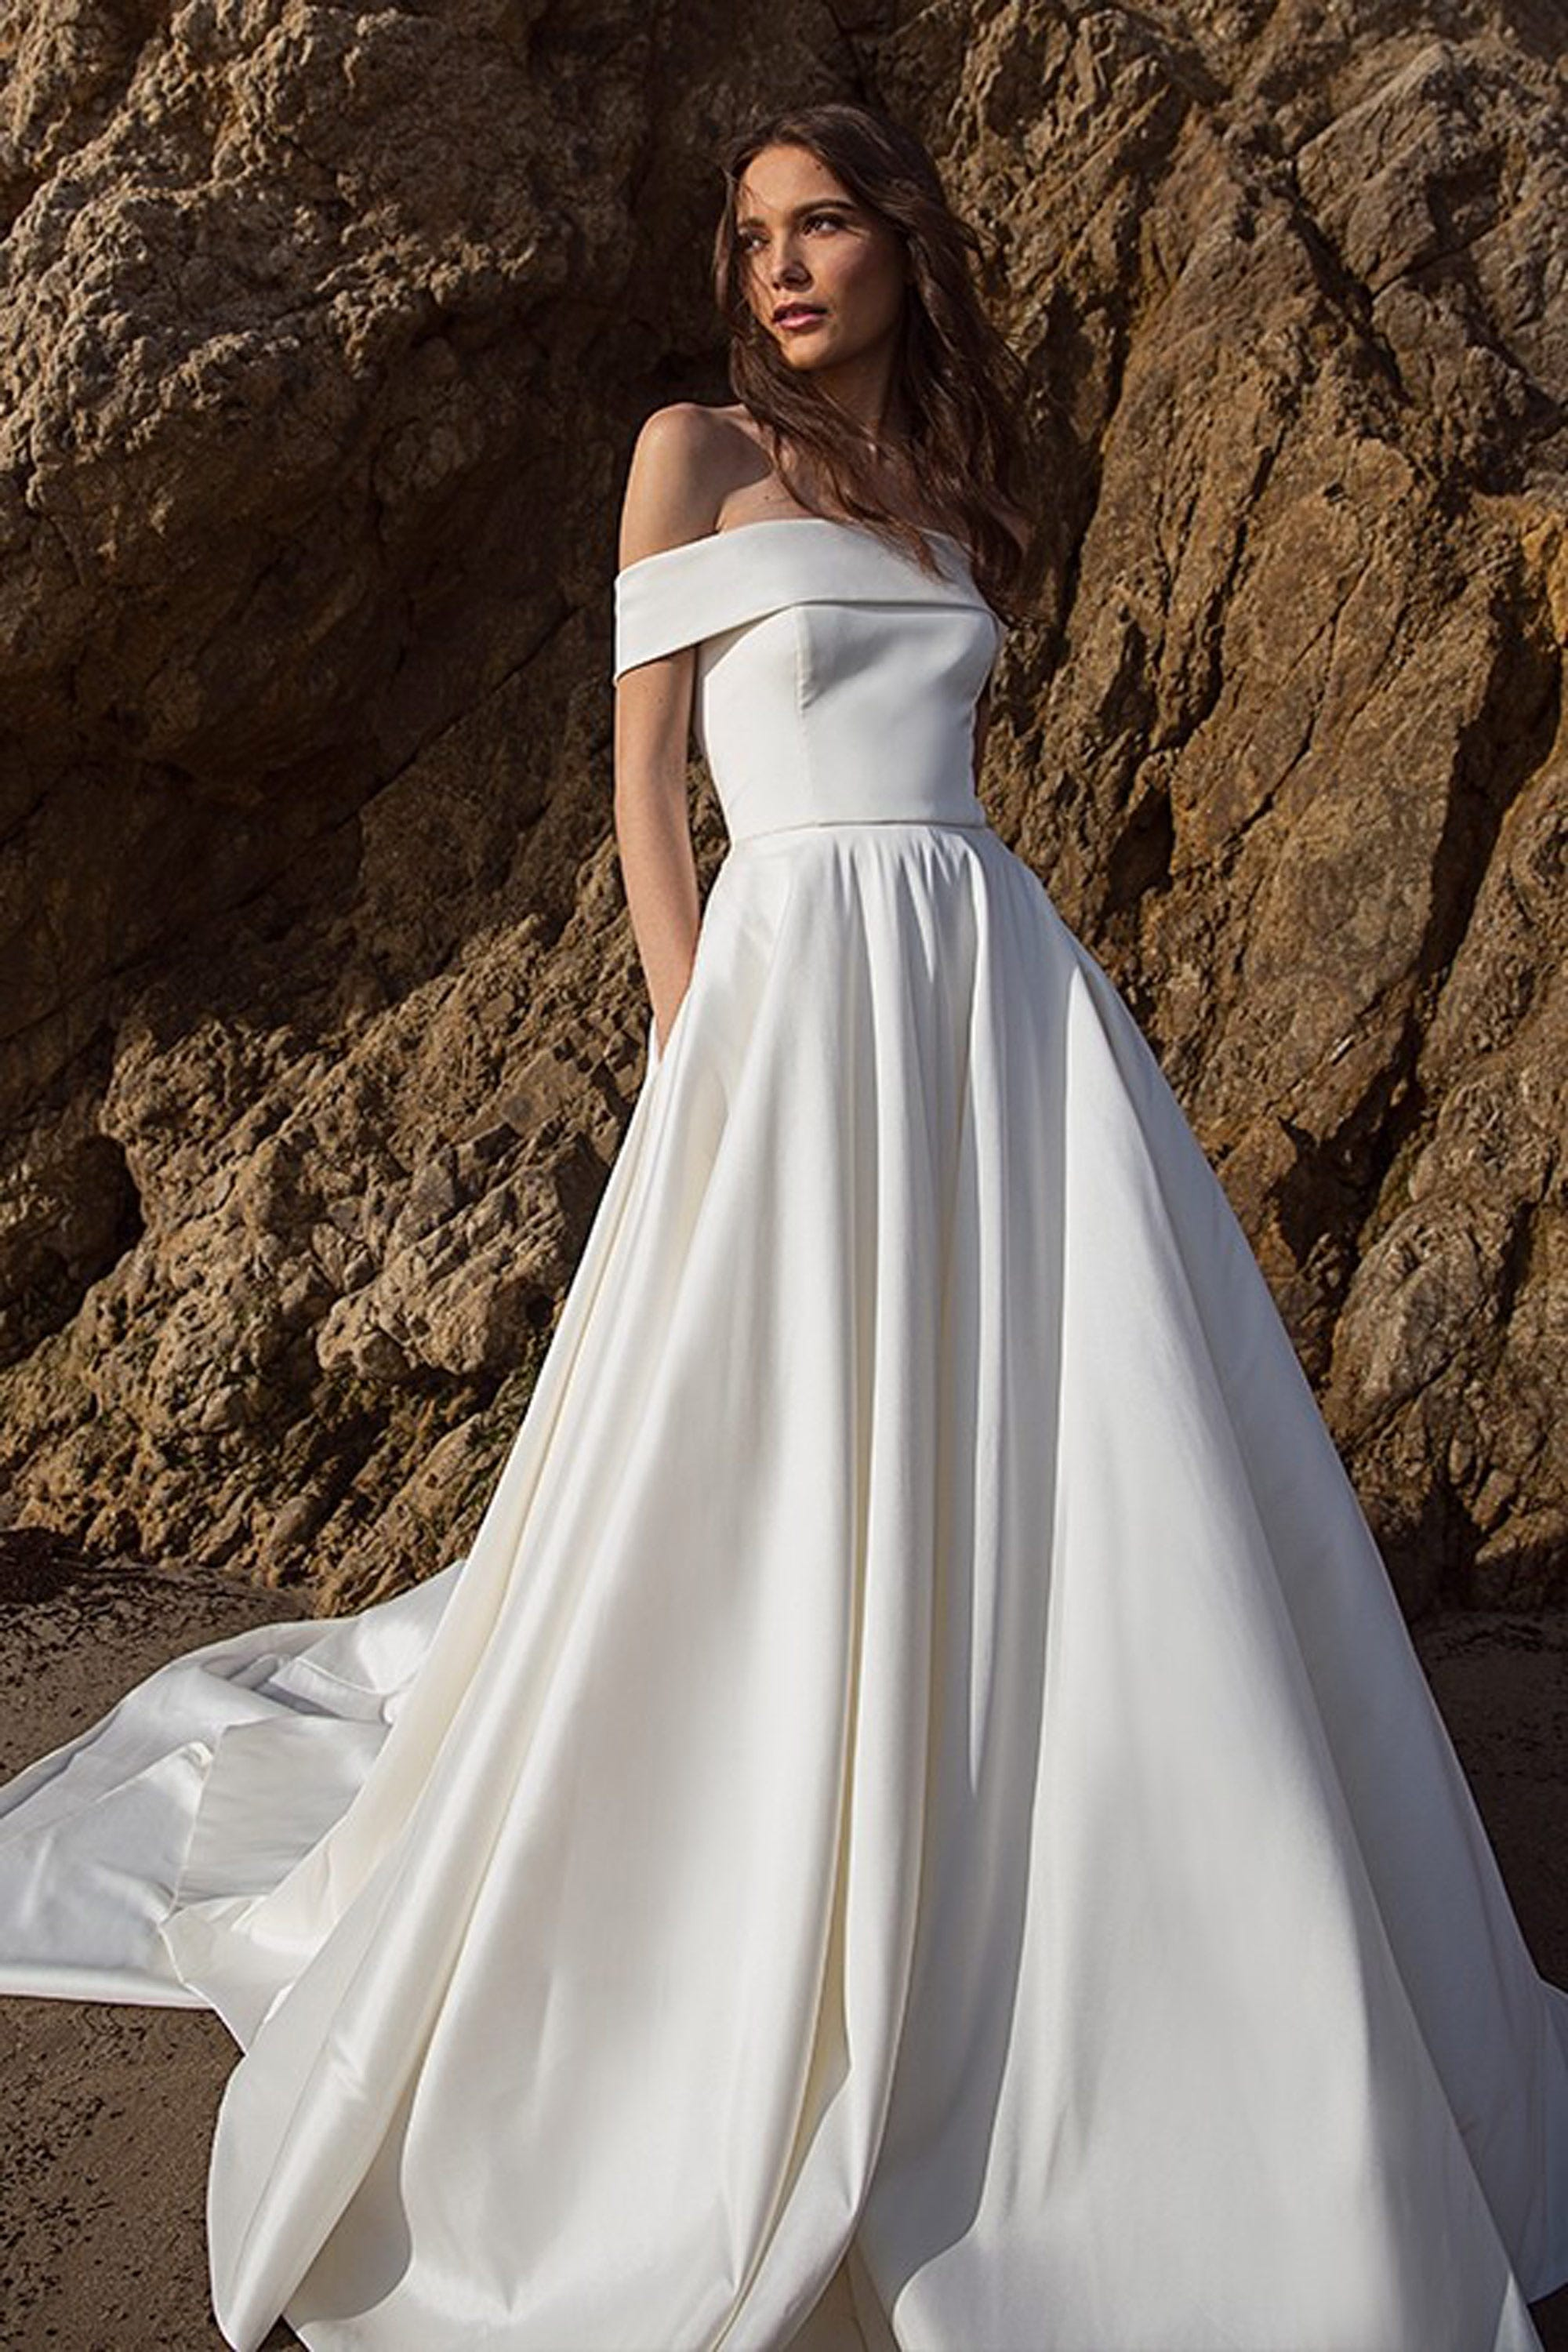 11 Seriously Amazing Wedding Dresses With Pockets For The Hands-On Bride